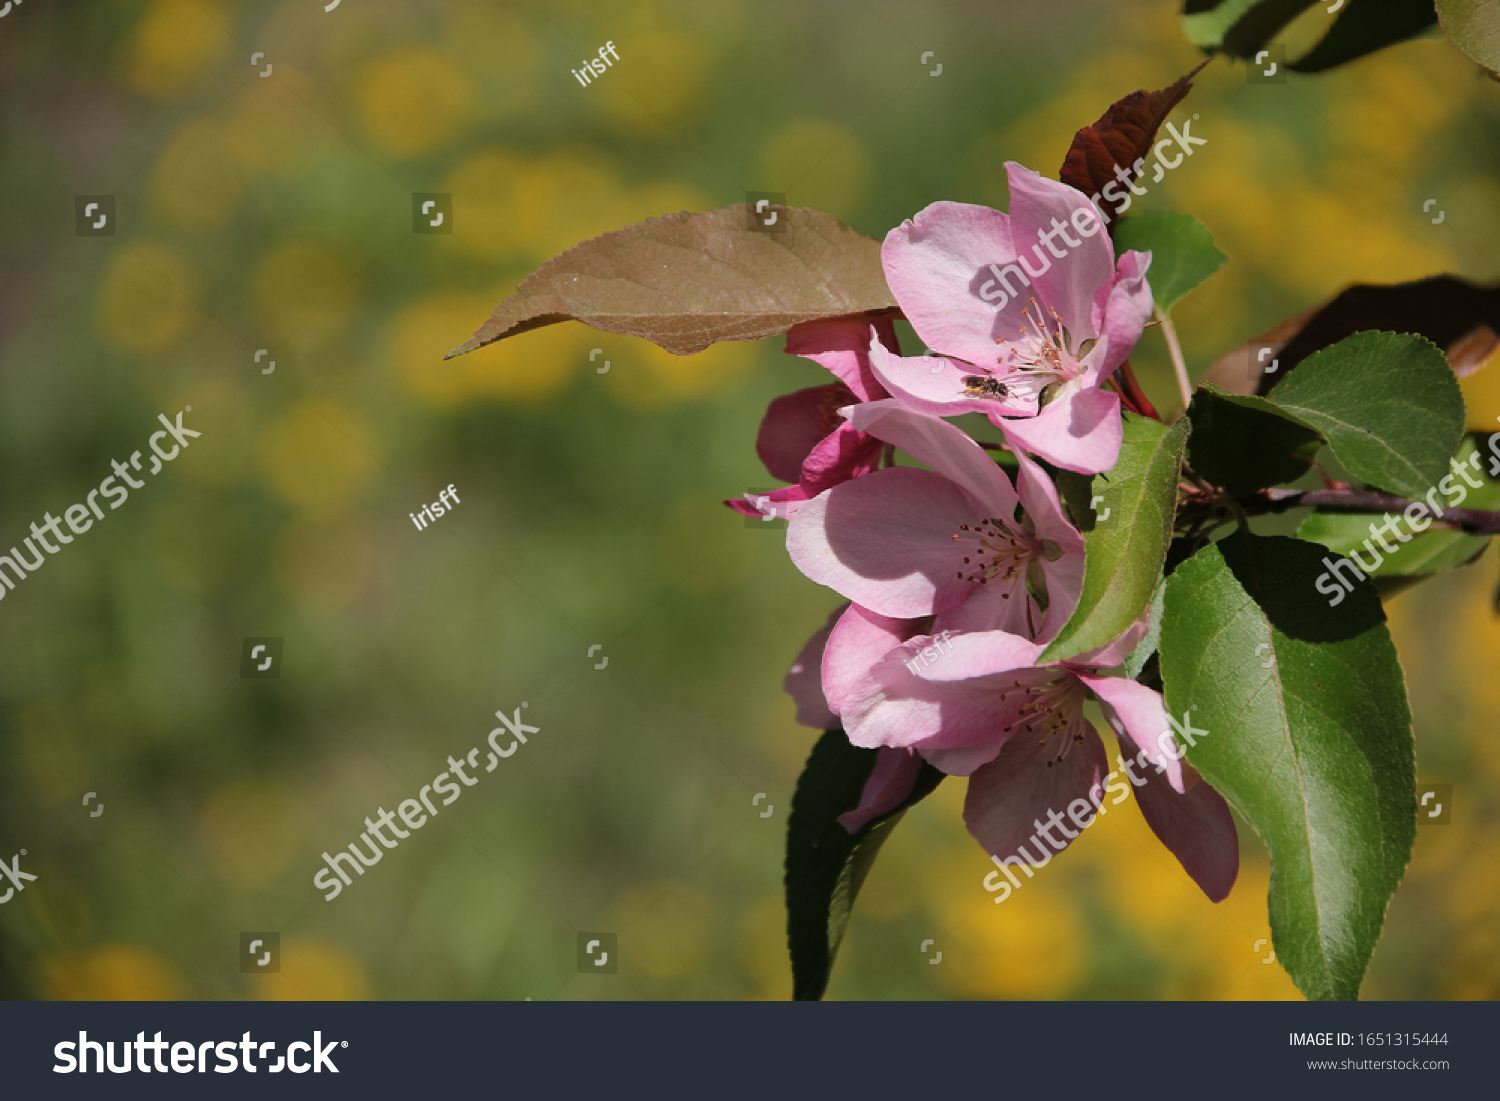 stock-photo-spring-apple-blossom-beautif